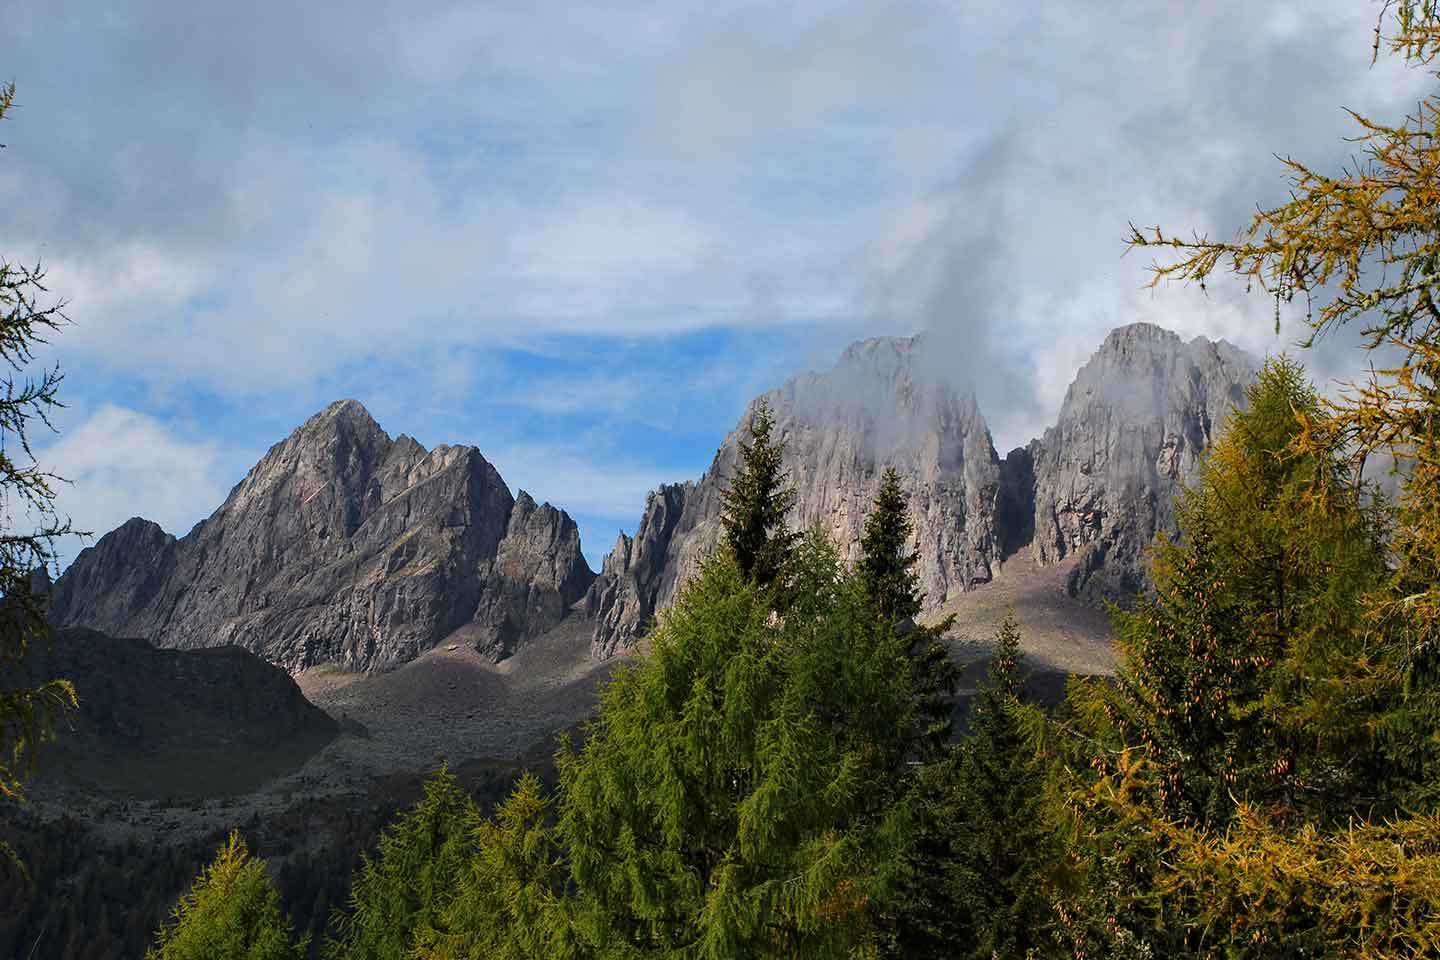 Paneveggio-Pale di San Martino Natural Park - Author: Viducoli